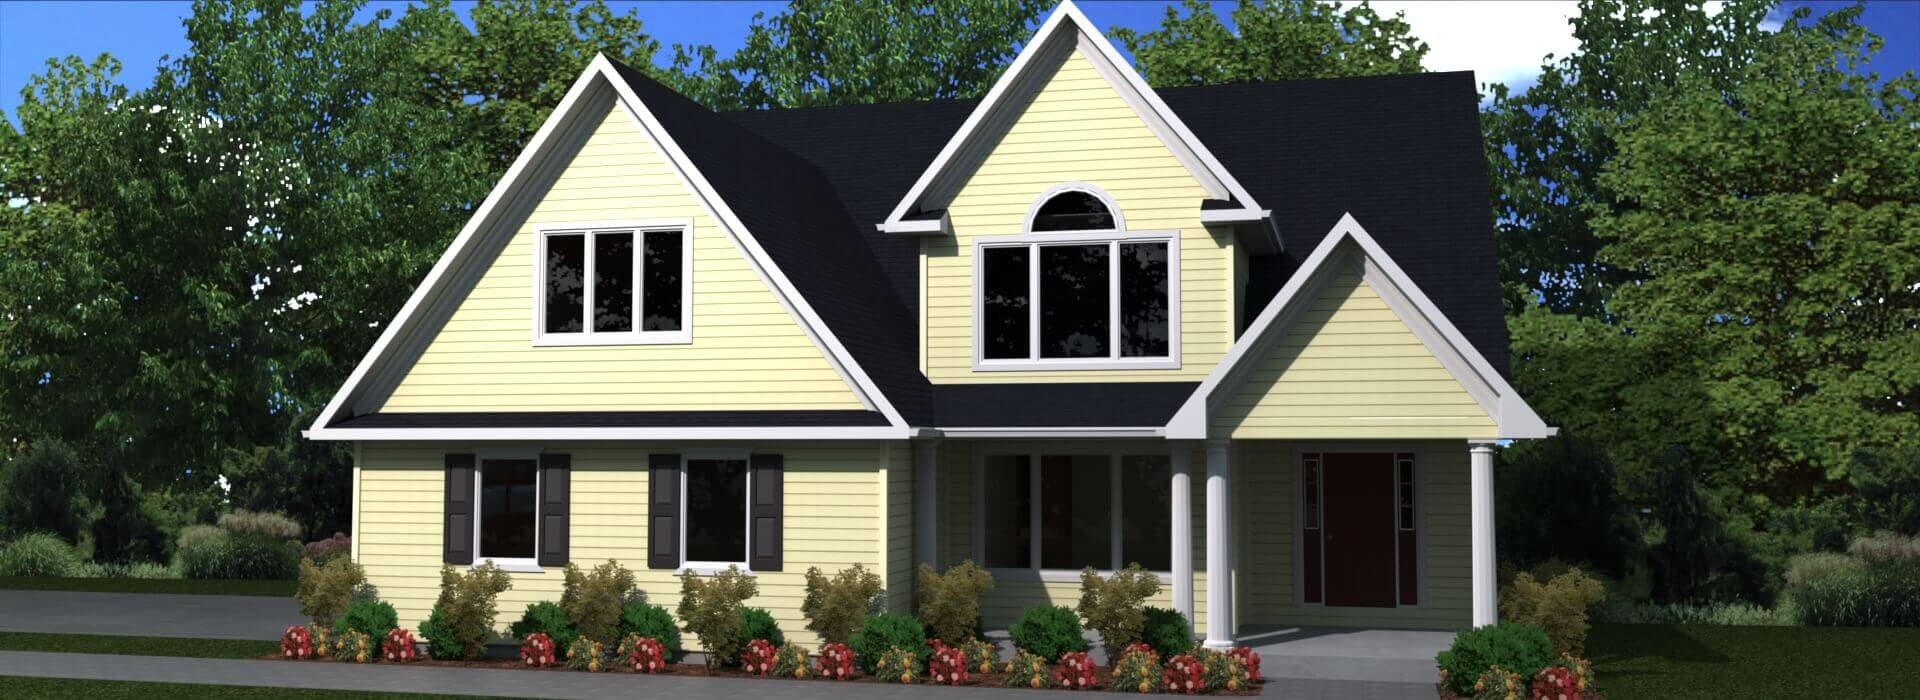 2195 sq.ft. timber mart house 3 bed 2.5 bath exterior render